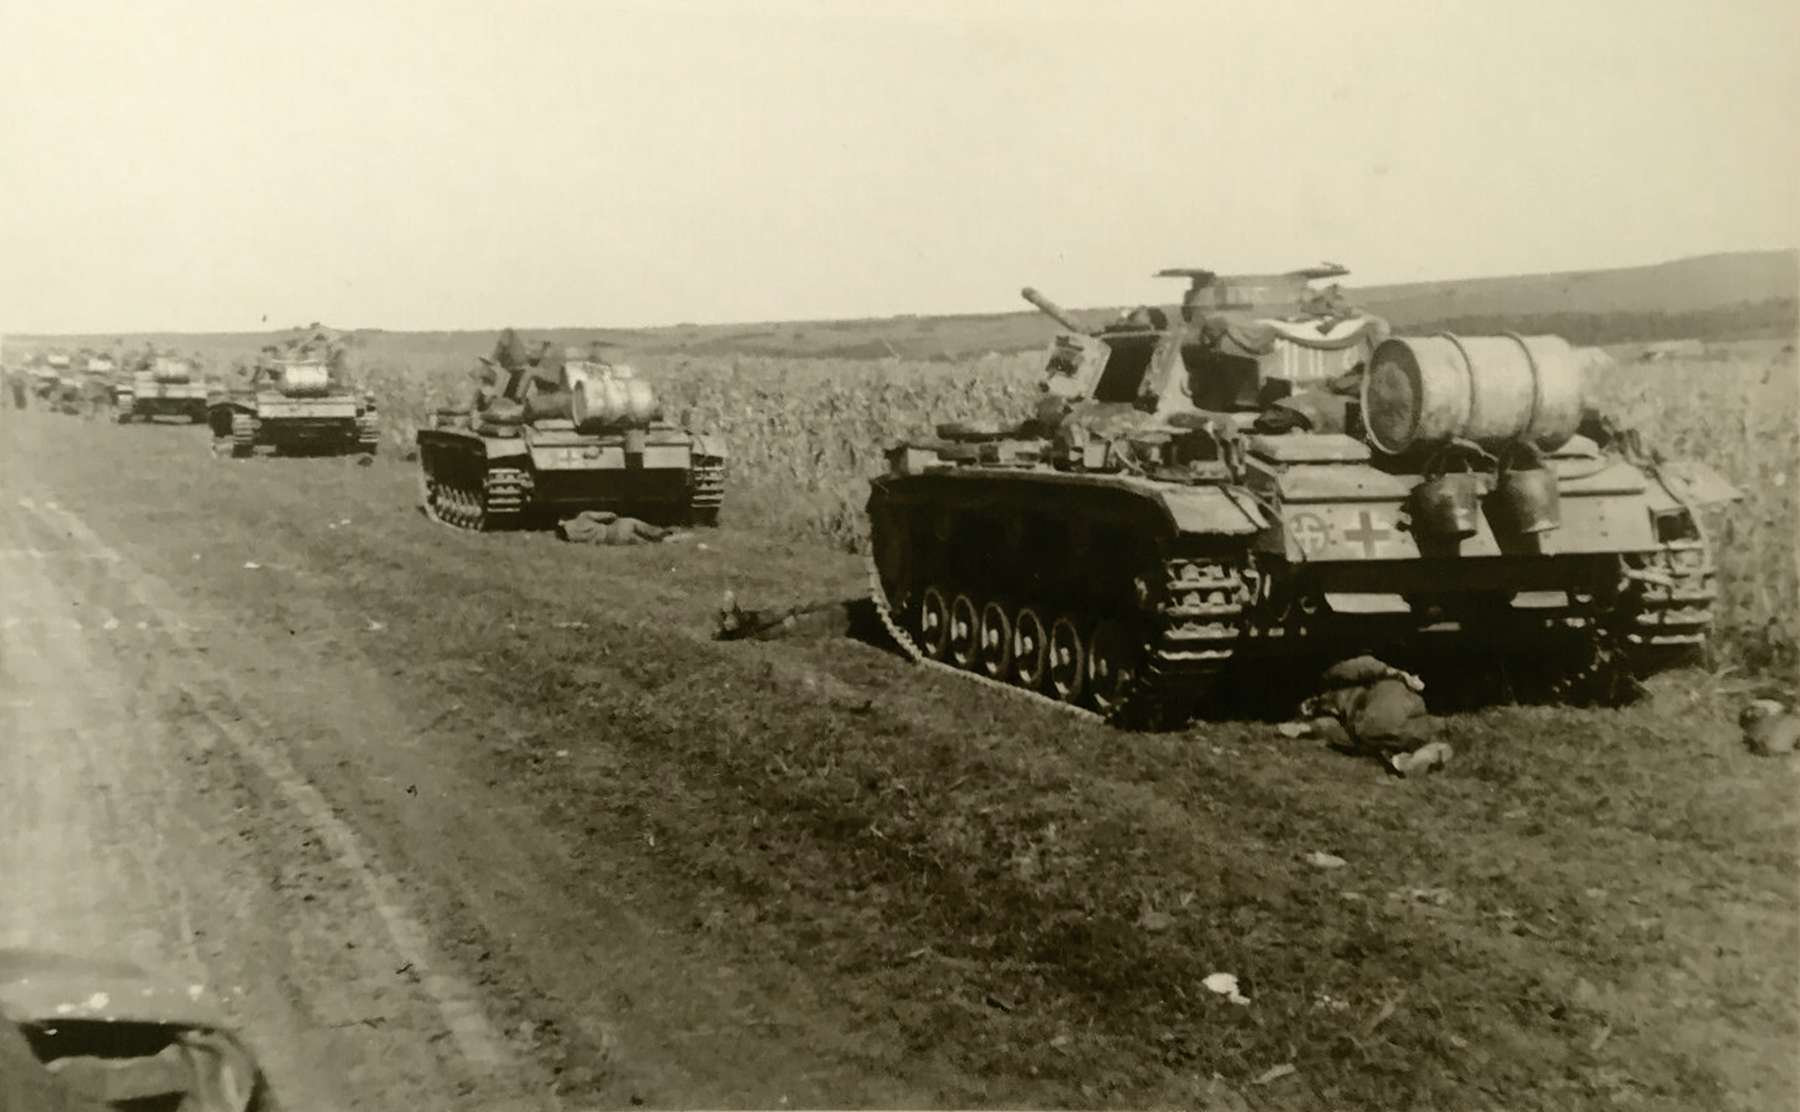 Wehrmachts 5th SS Panzer Division Viking tank unit during the battle of France 1940 ebay 01